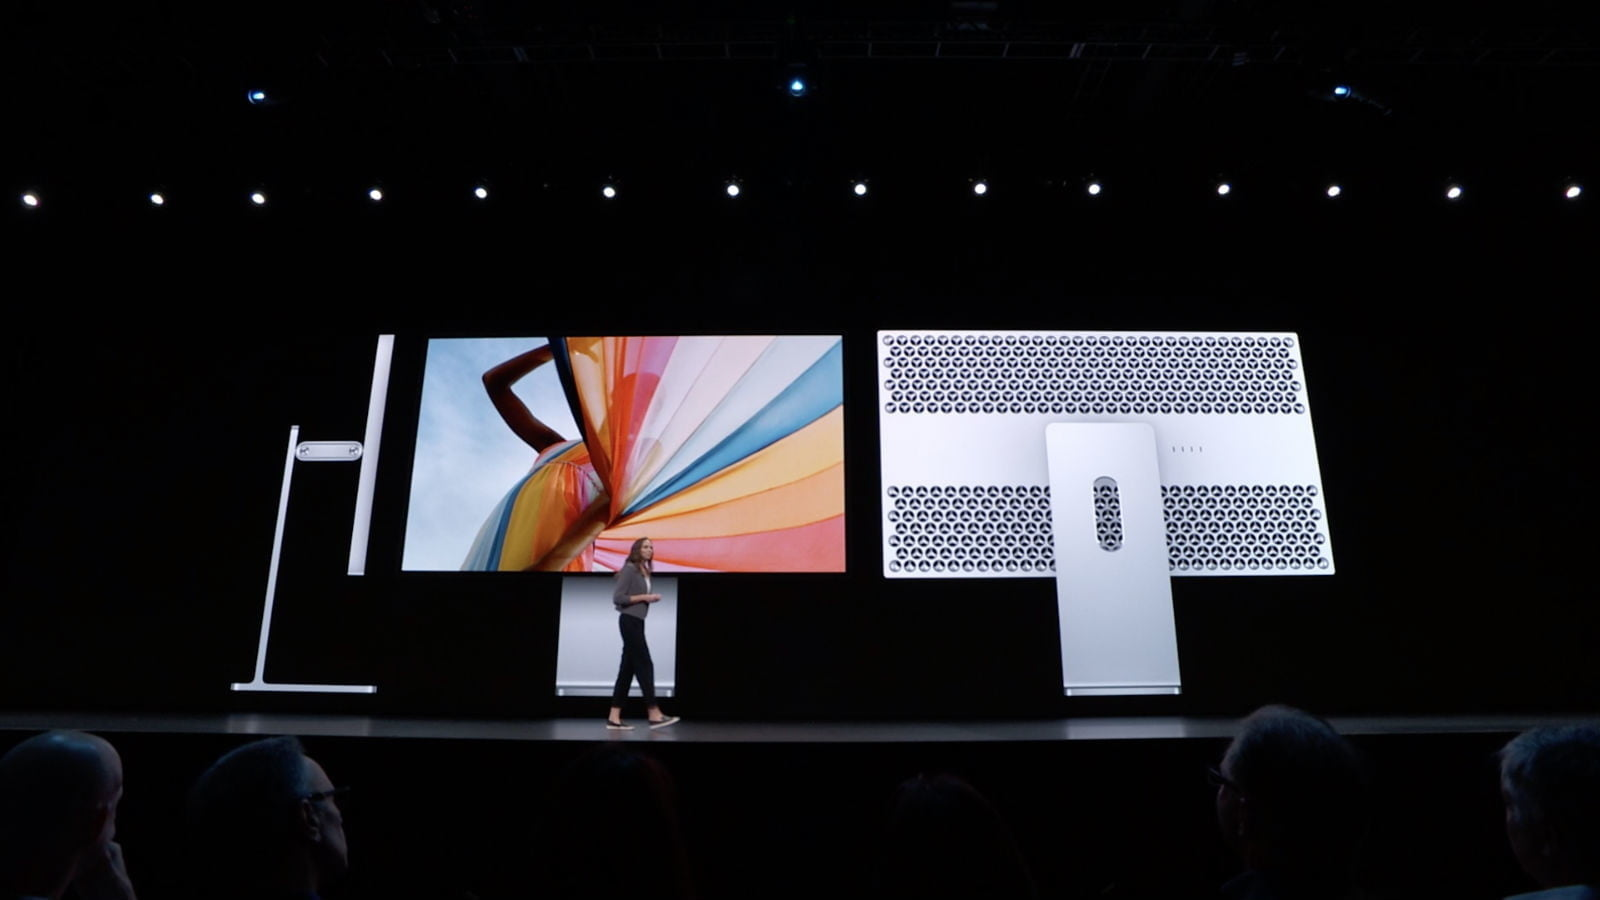 apple pro display xdr wwdc 2019